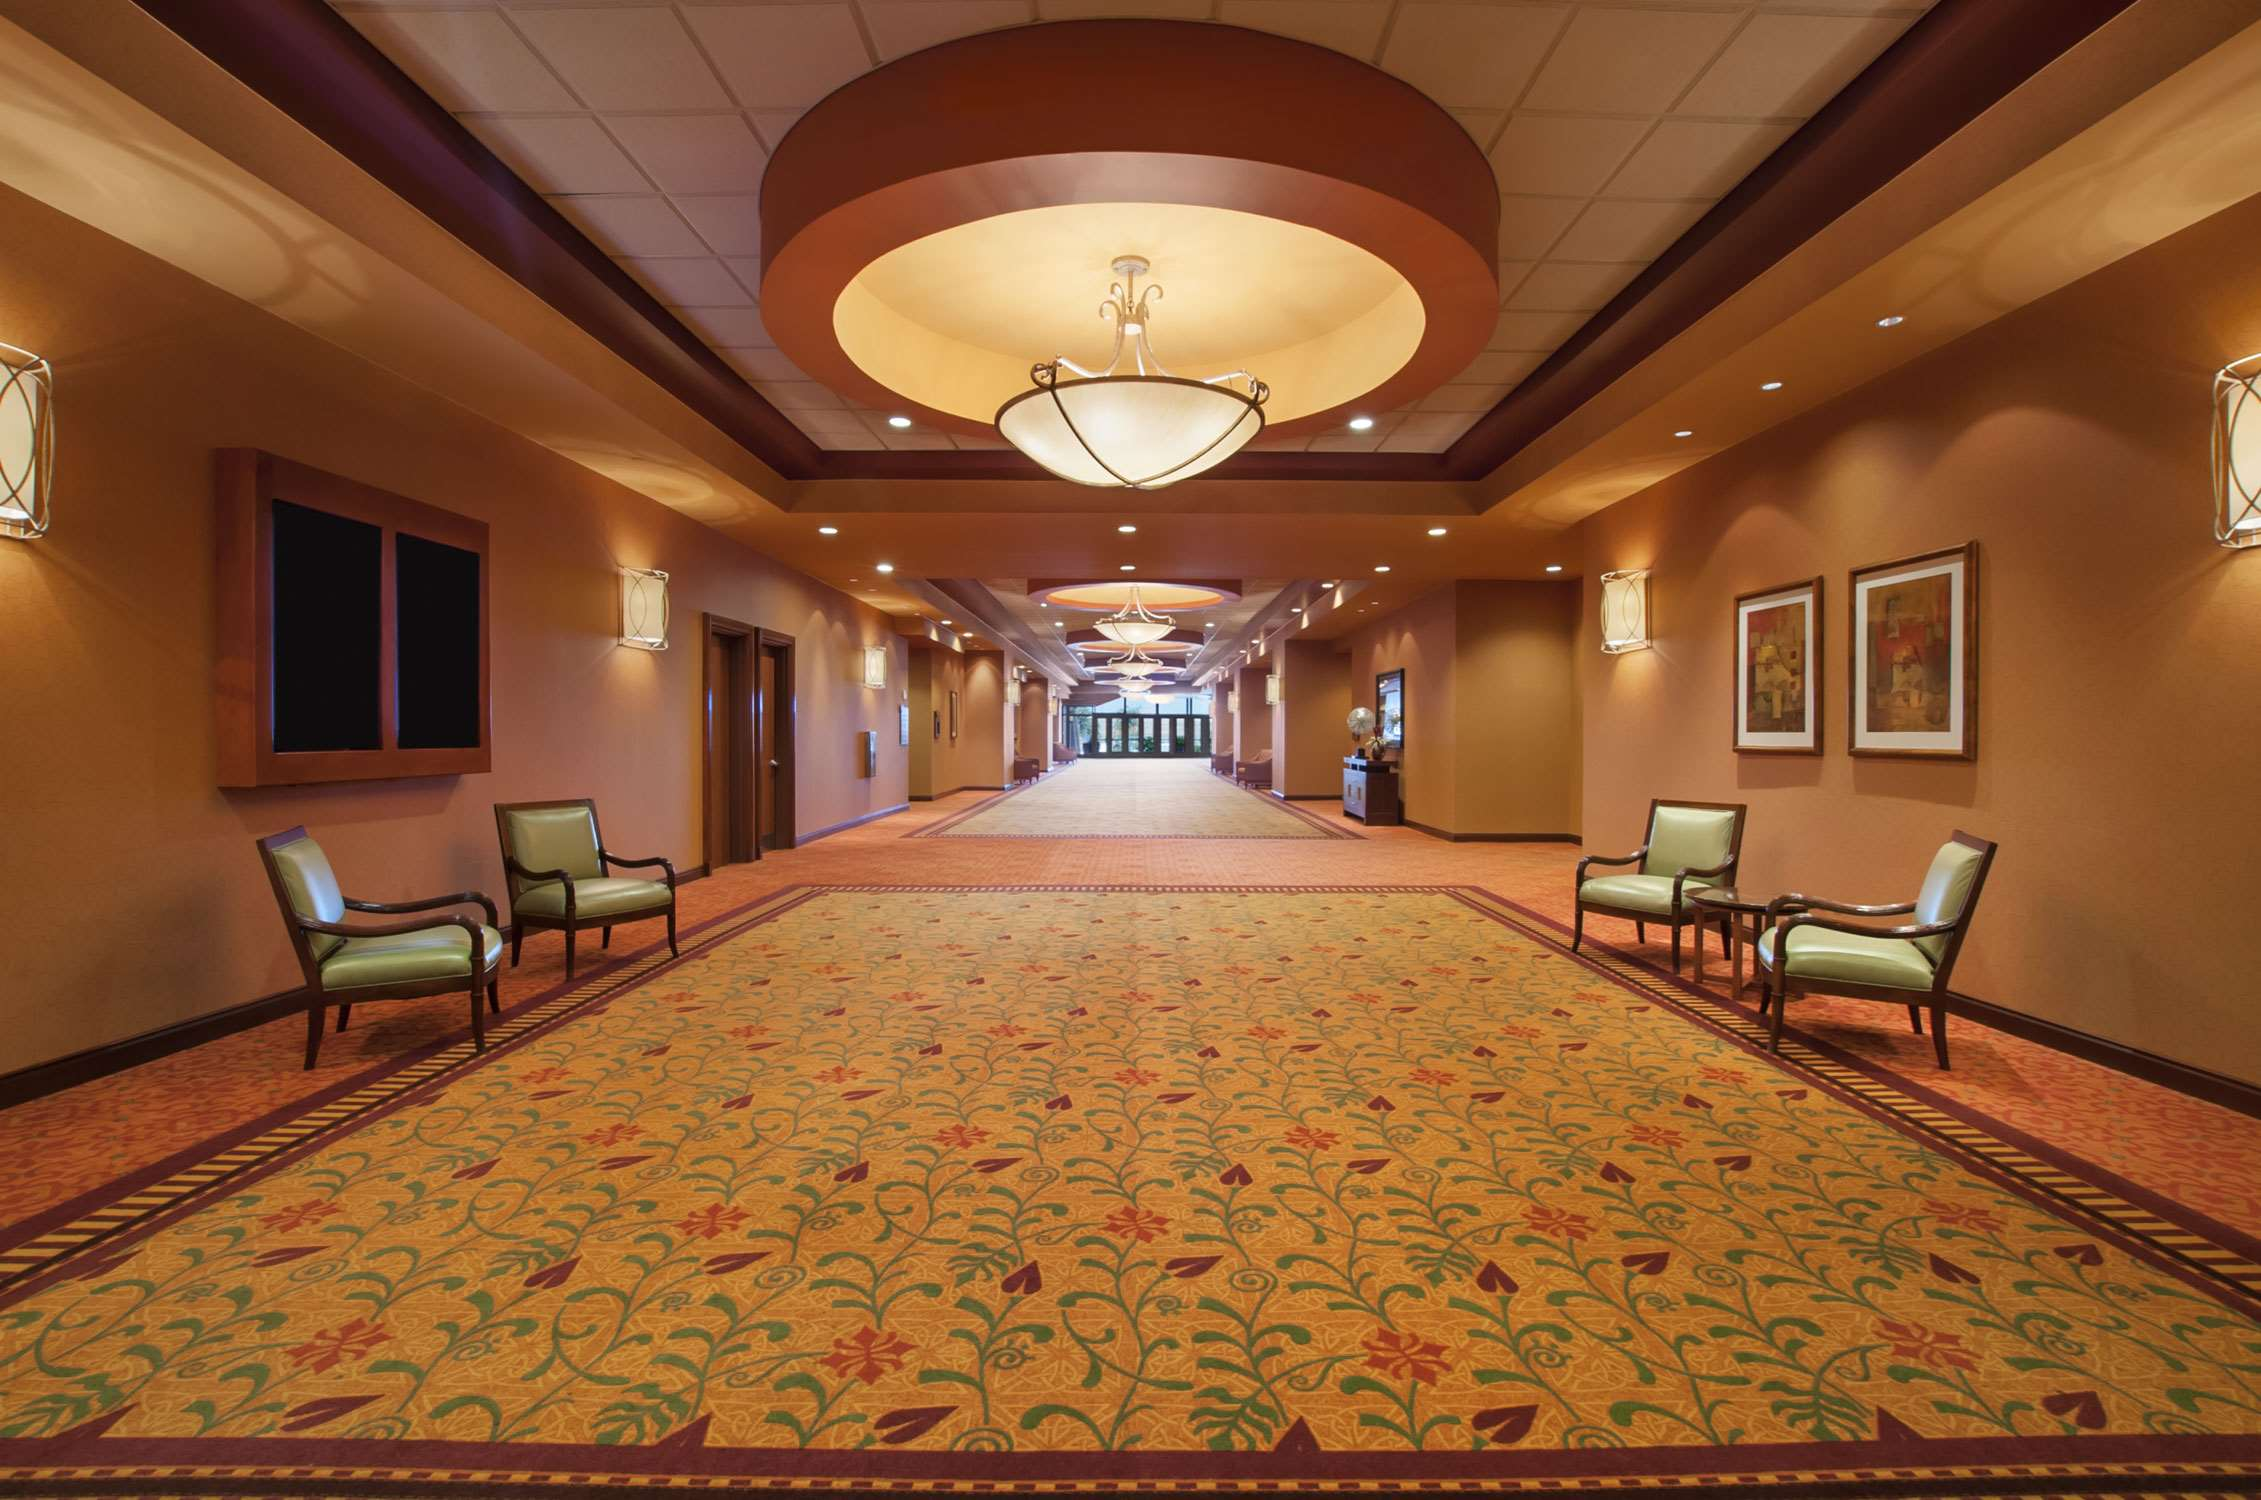 Embassy Suites by Hilton San Marcos Hotel Conference Center & Spa image 33